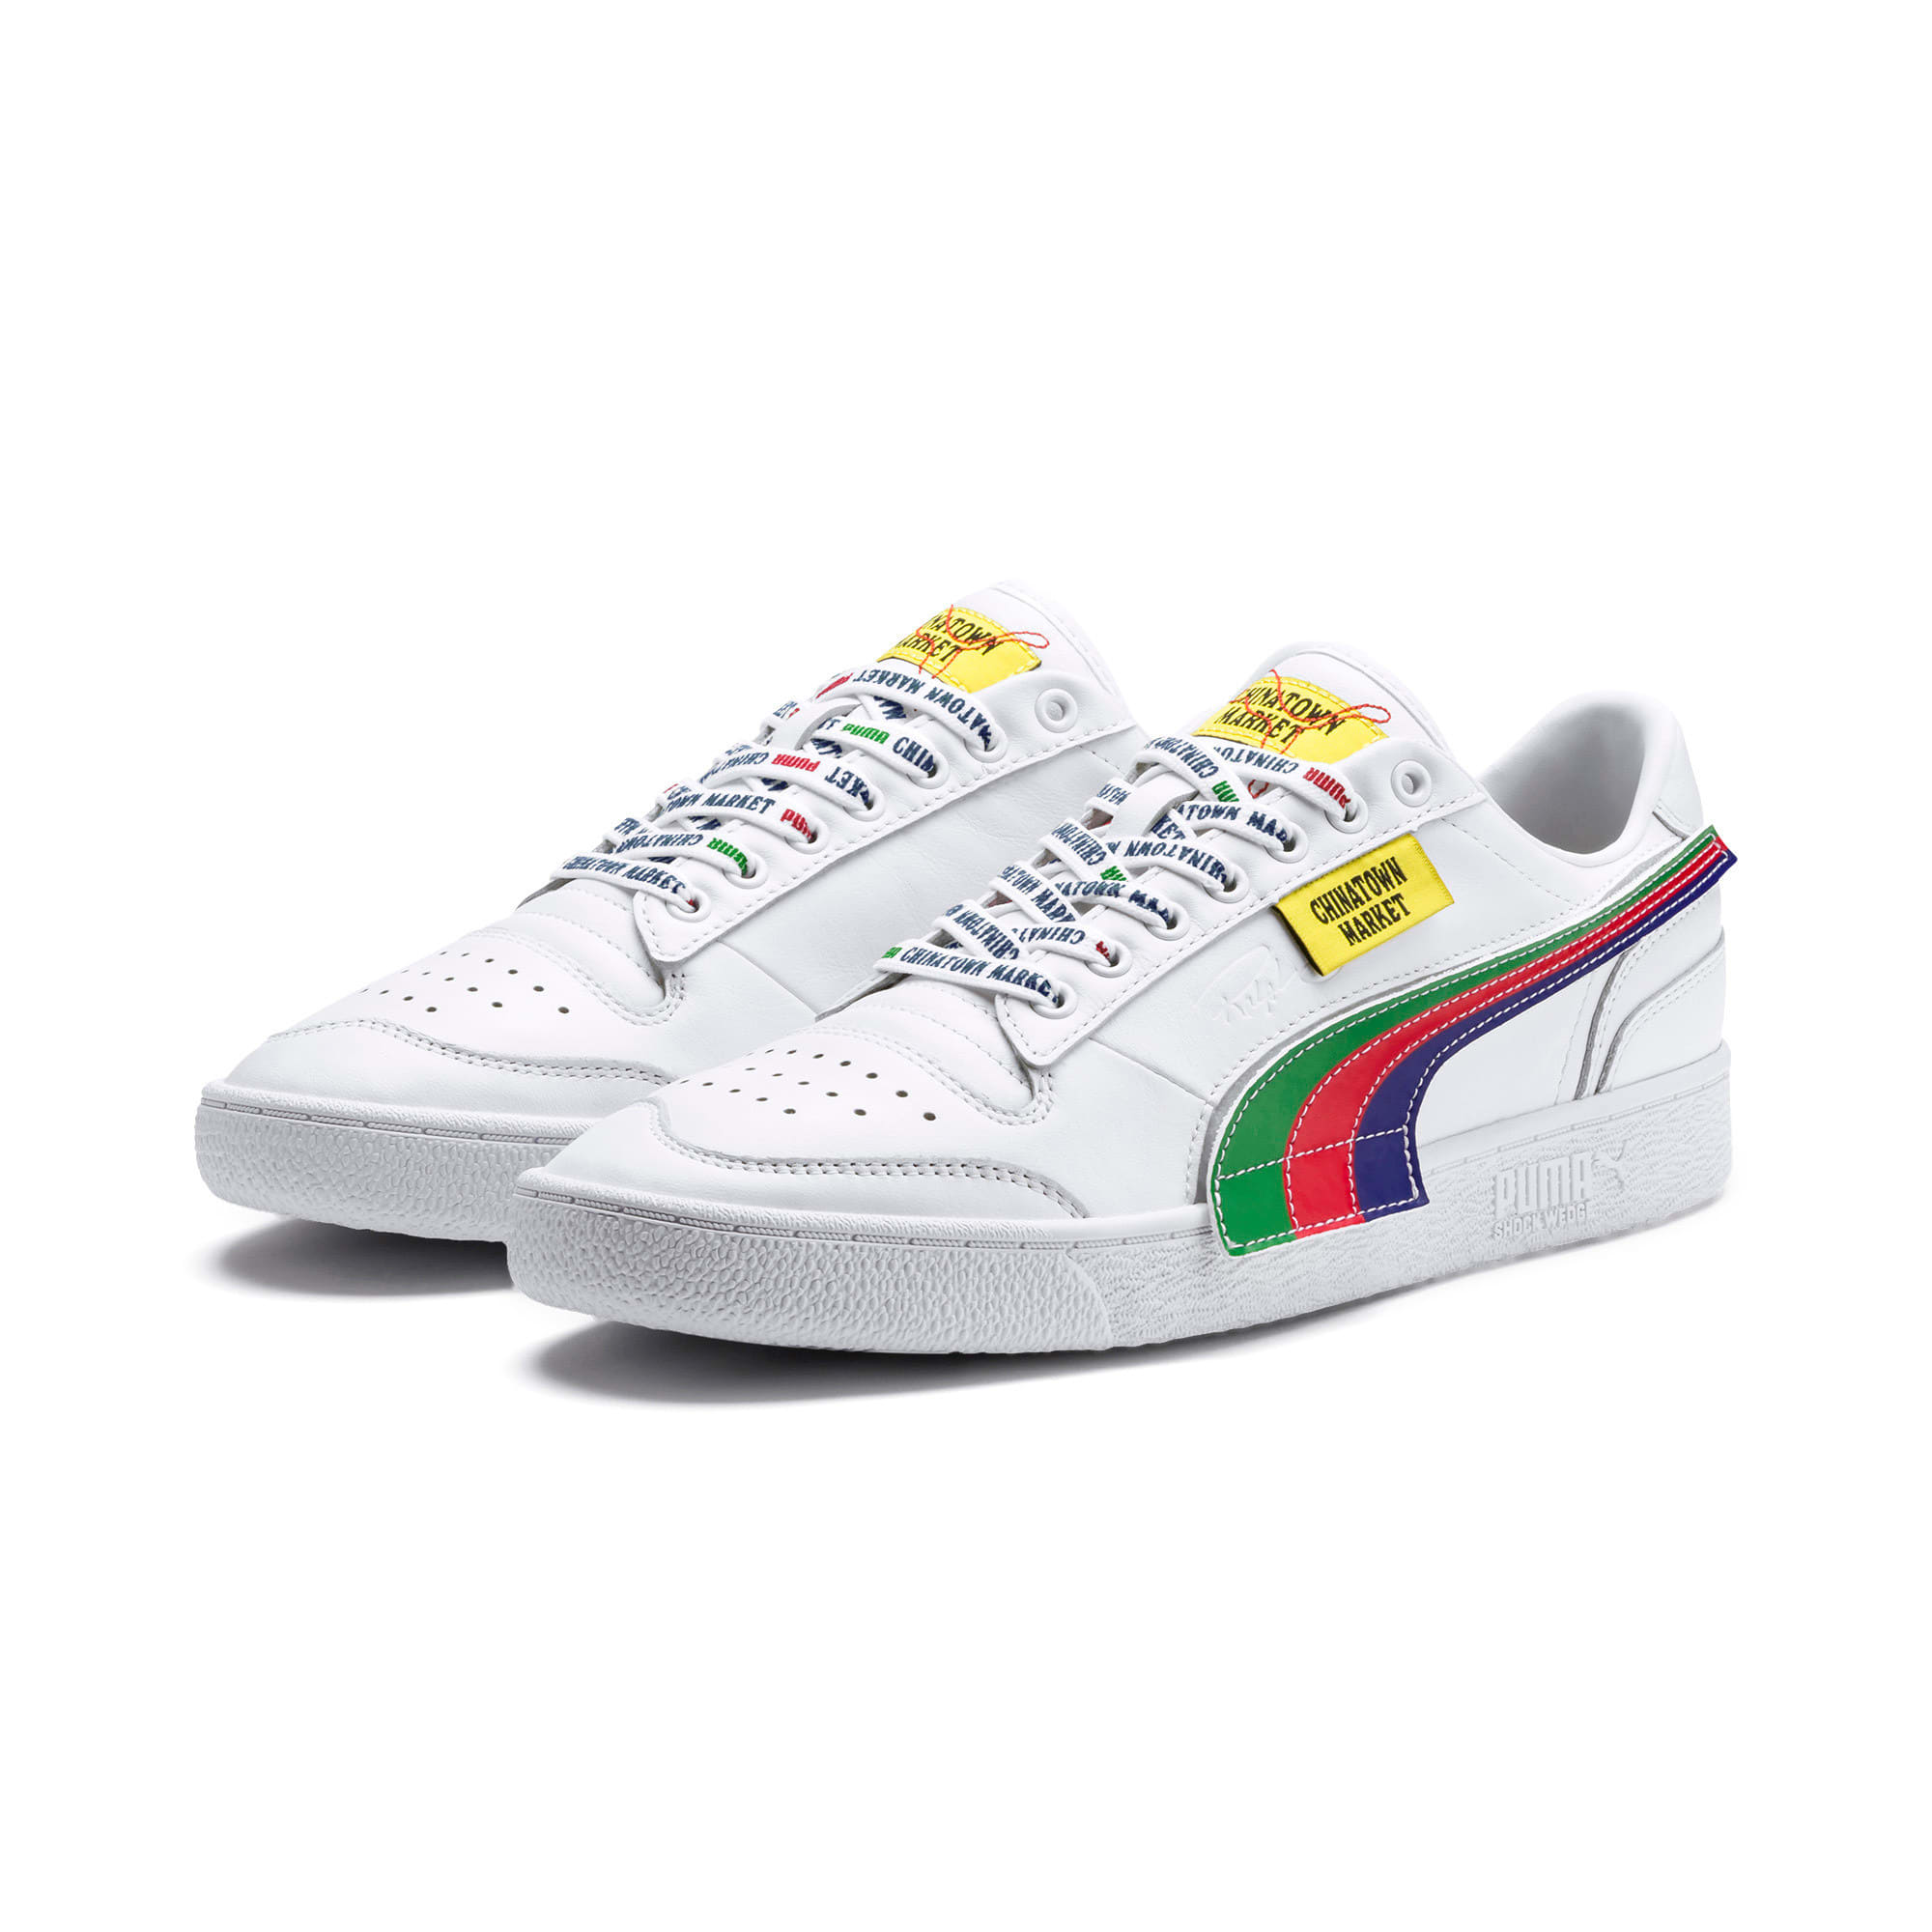 Thumbnail 10 of PUMA x CHINATOWN MARKET ラルフ サンプソン ローカット スニーカー, Puma White, medium-JPN